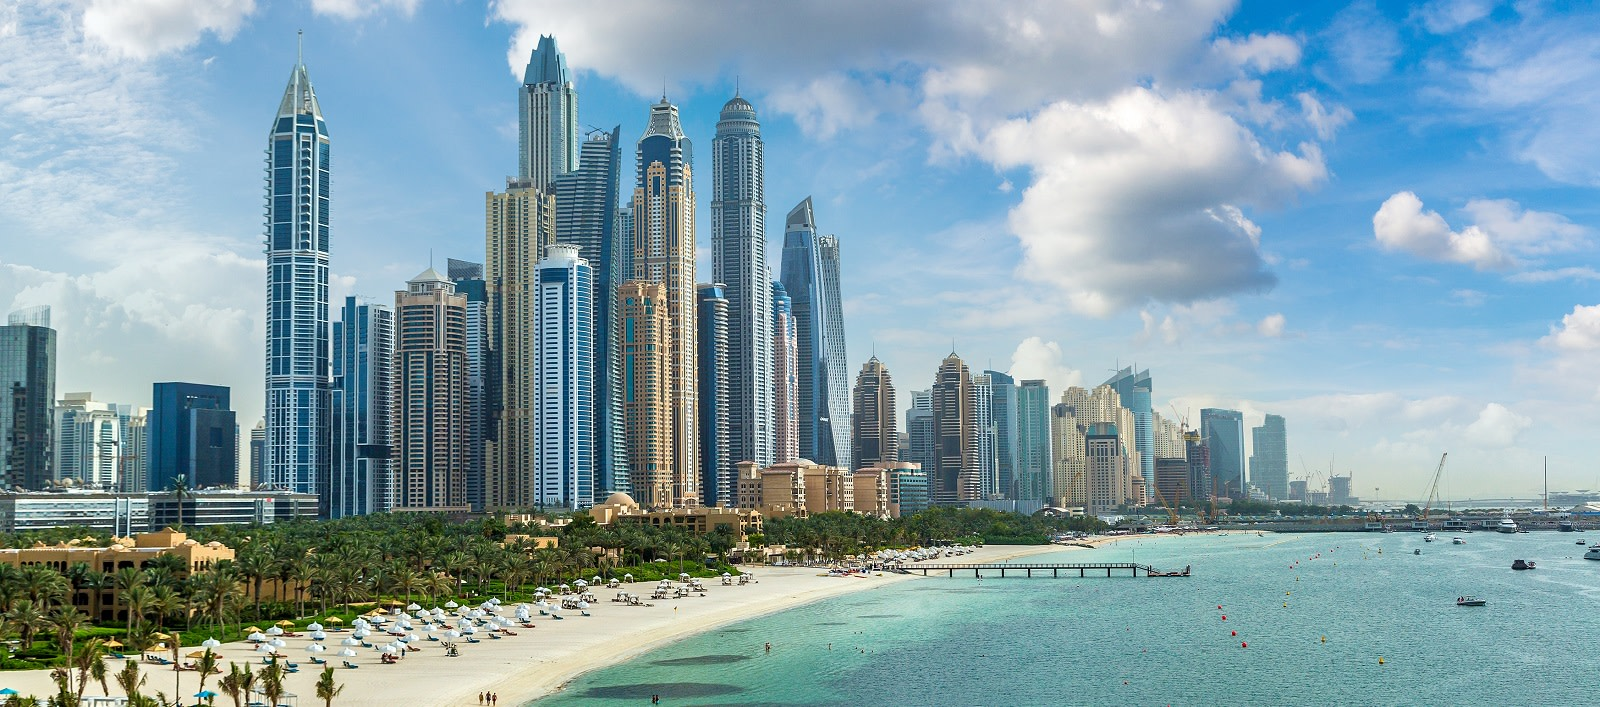 Enchanting Travels UAE Tours Dubai Marina in a summer day, United Arab Emirates